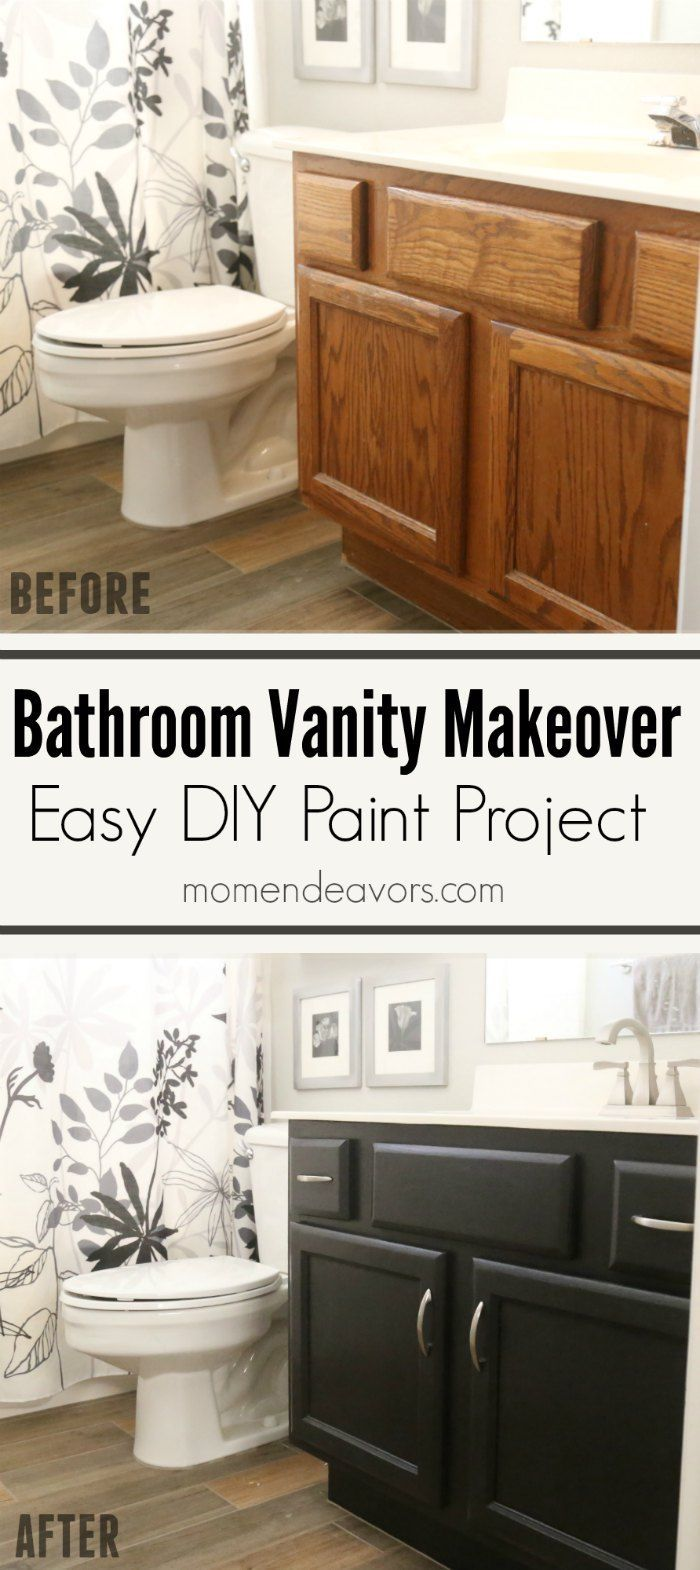 bathroom vanity makeover easy diy home paint project paint suggestions and easy diy tutorial for painting bathroom cabinets black with paint from